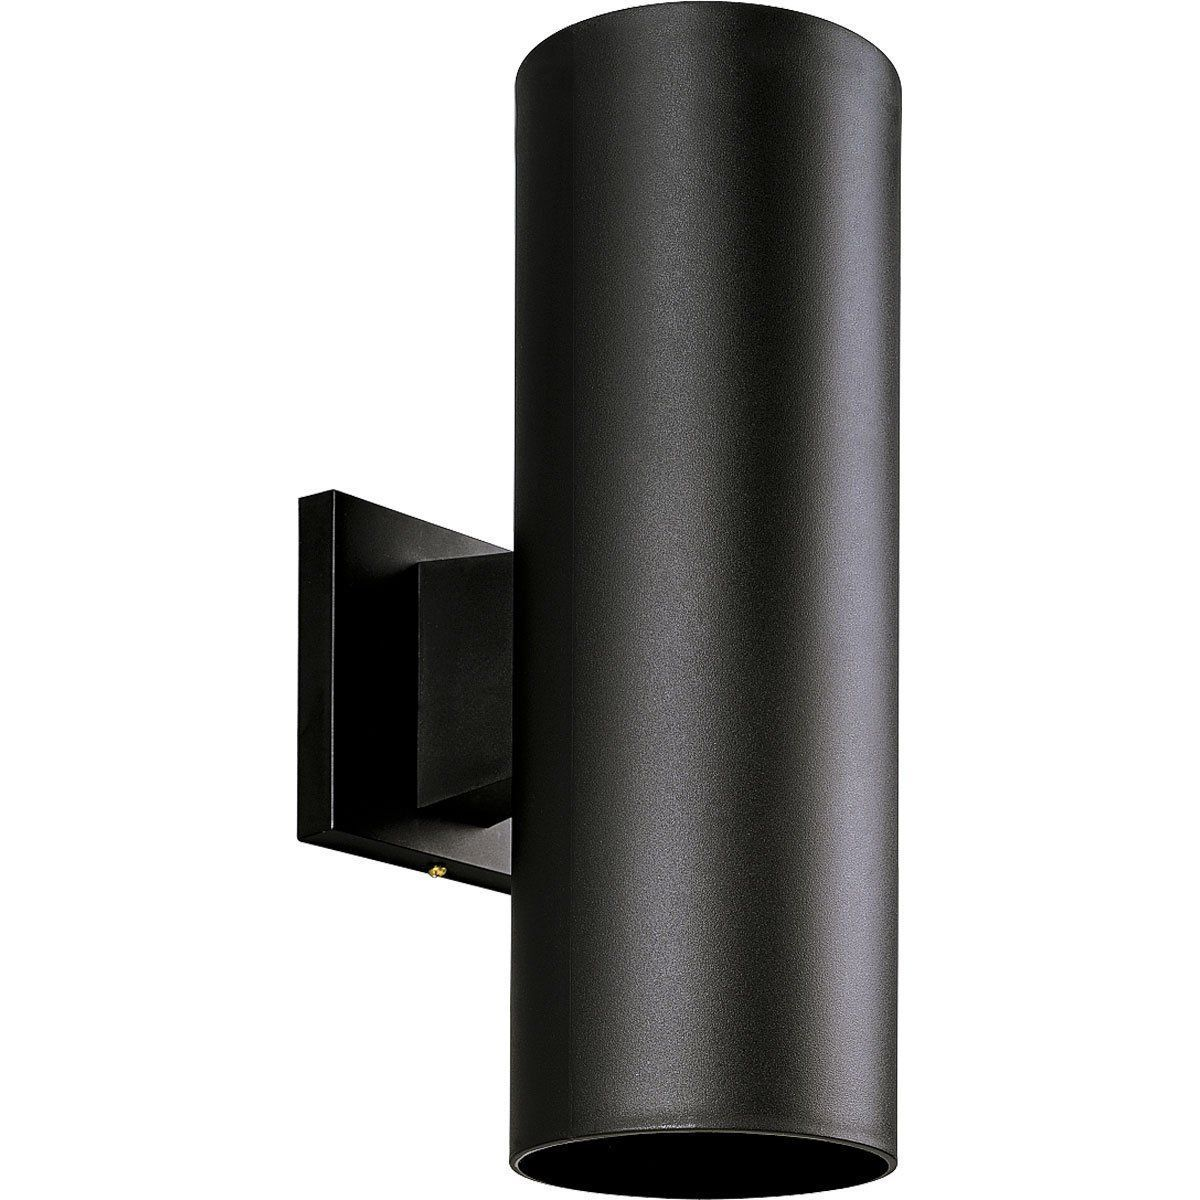 Black Finish Outside Outdoor Wall Sconce Accent Light Progress Lighting P5713-31